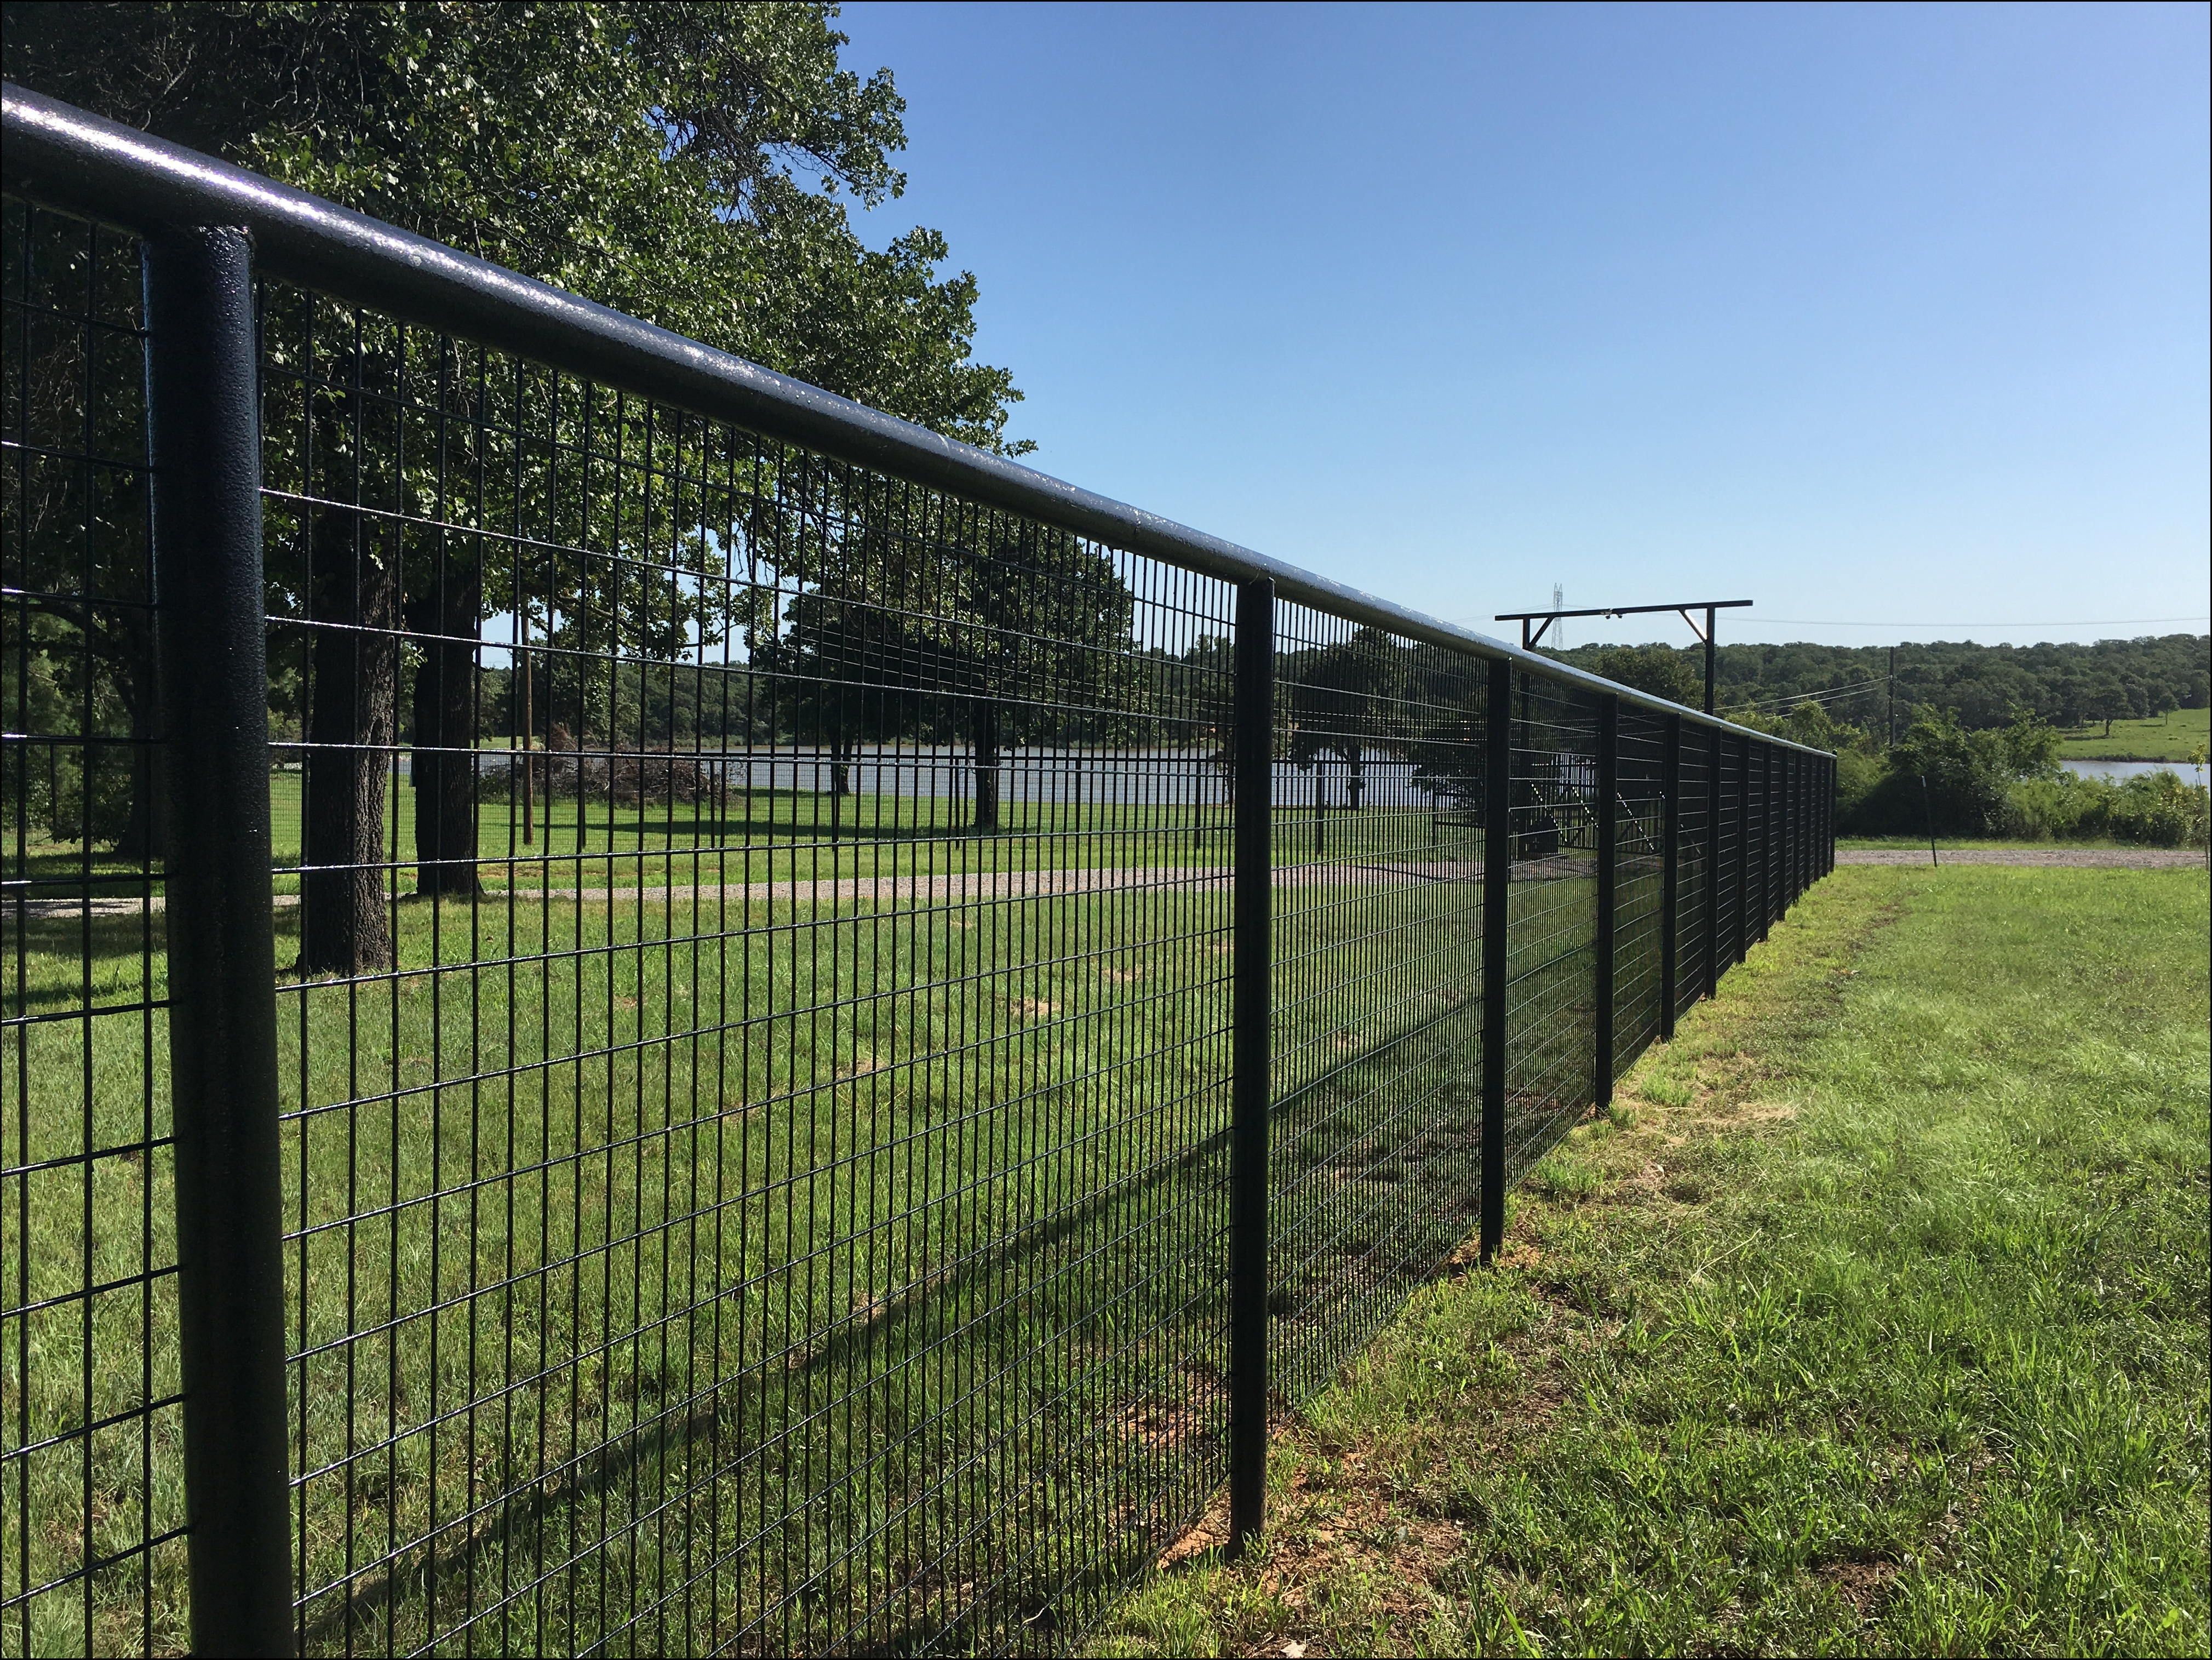 Images of White Pipe Fence - #rock-cafe